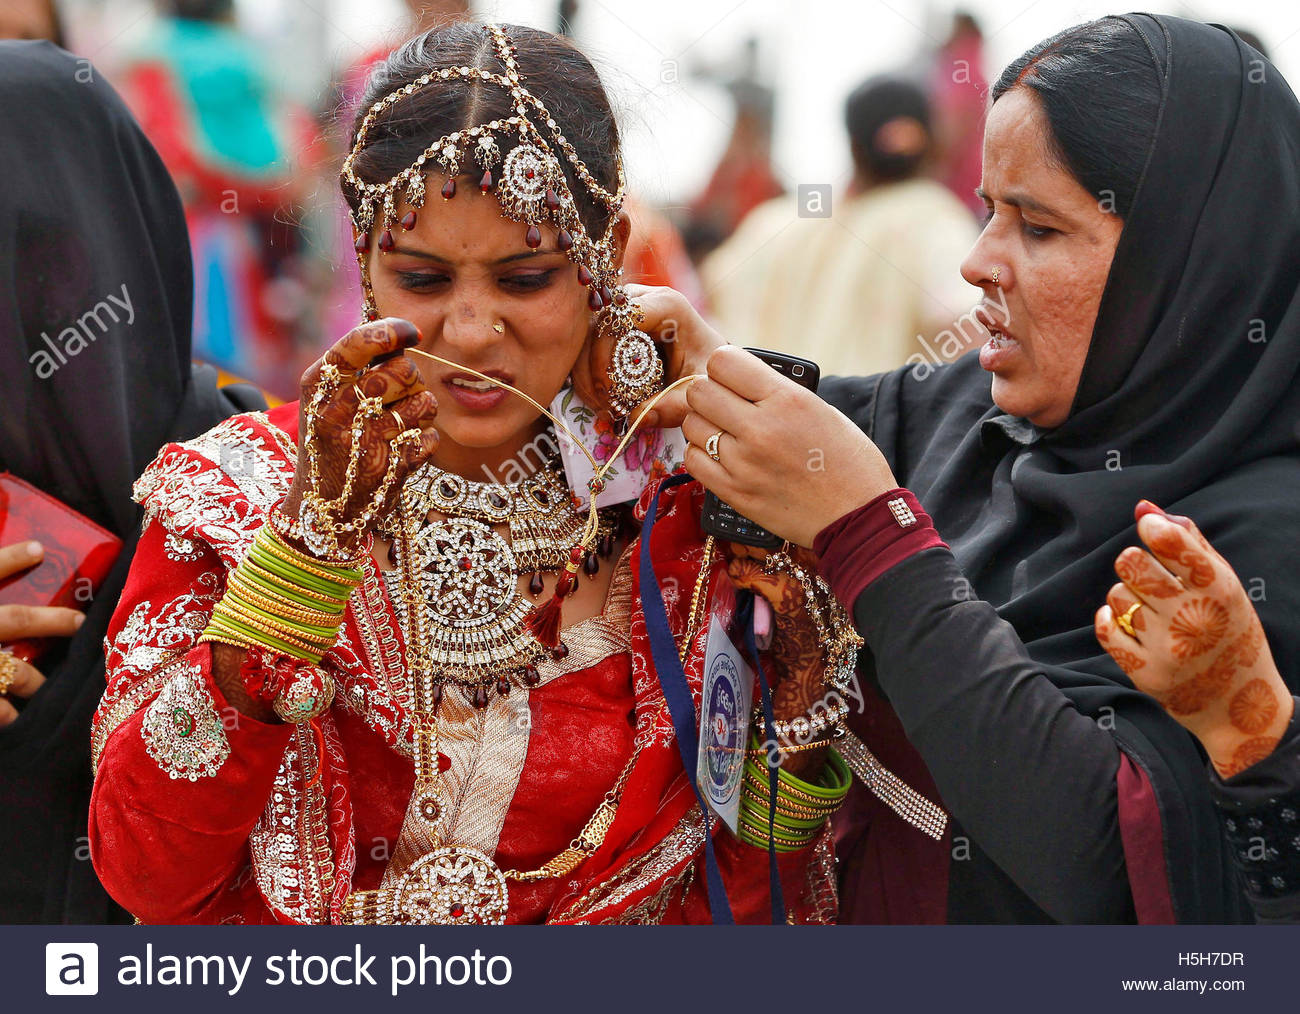 Marriage ornaments - A Muslim Bride Is Helped With Her Ornaments Before The Start Of A Mass Marriage